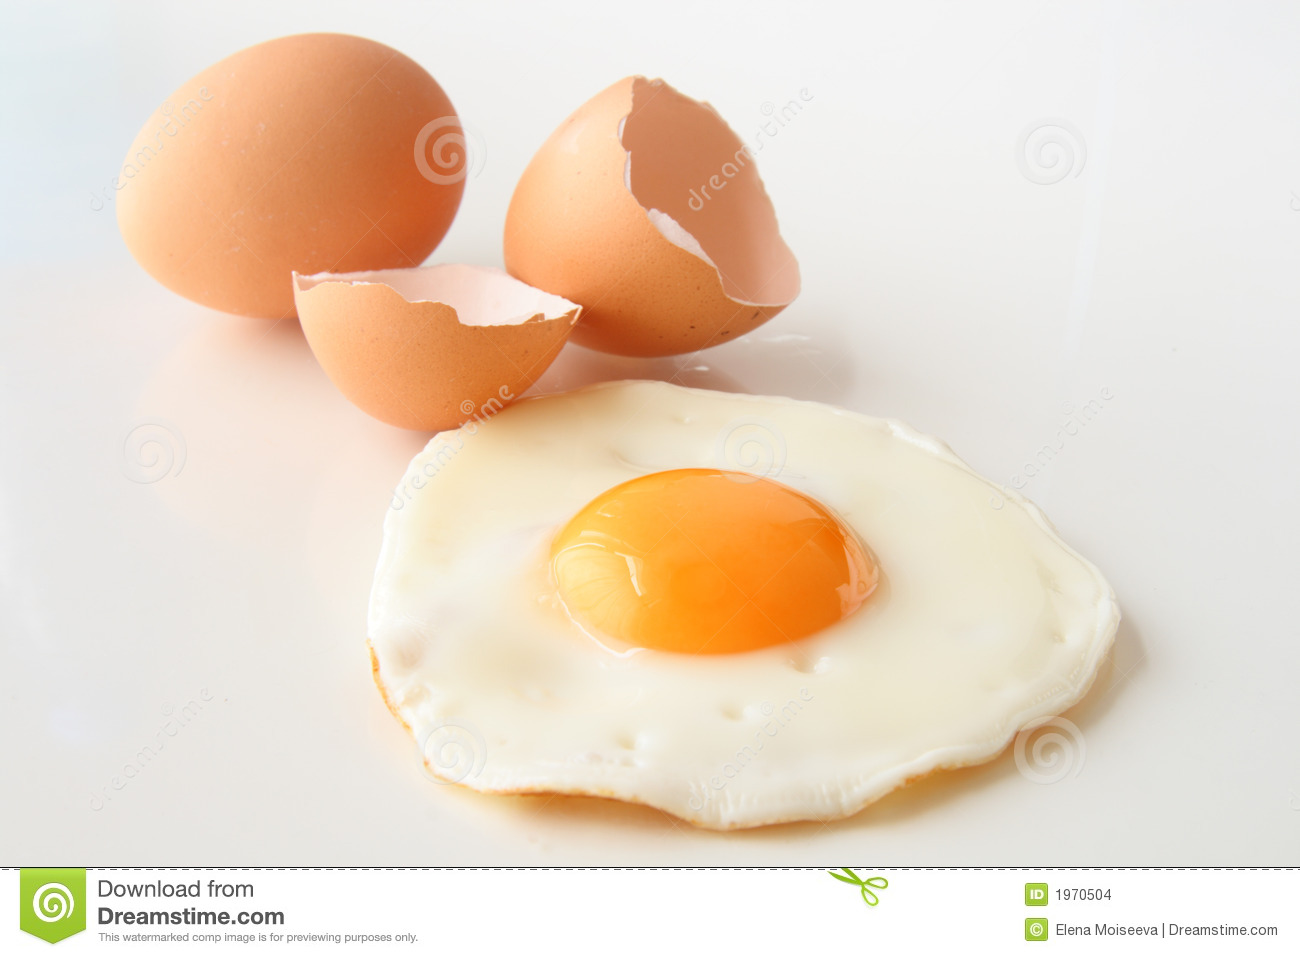 Traditional Fried Egg With Cracked Shell And Whole Egg